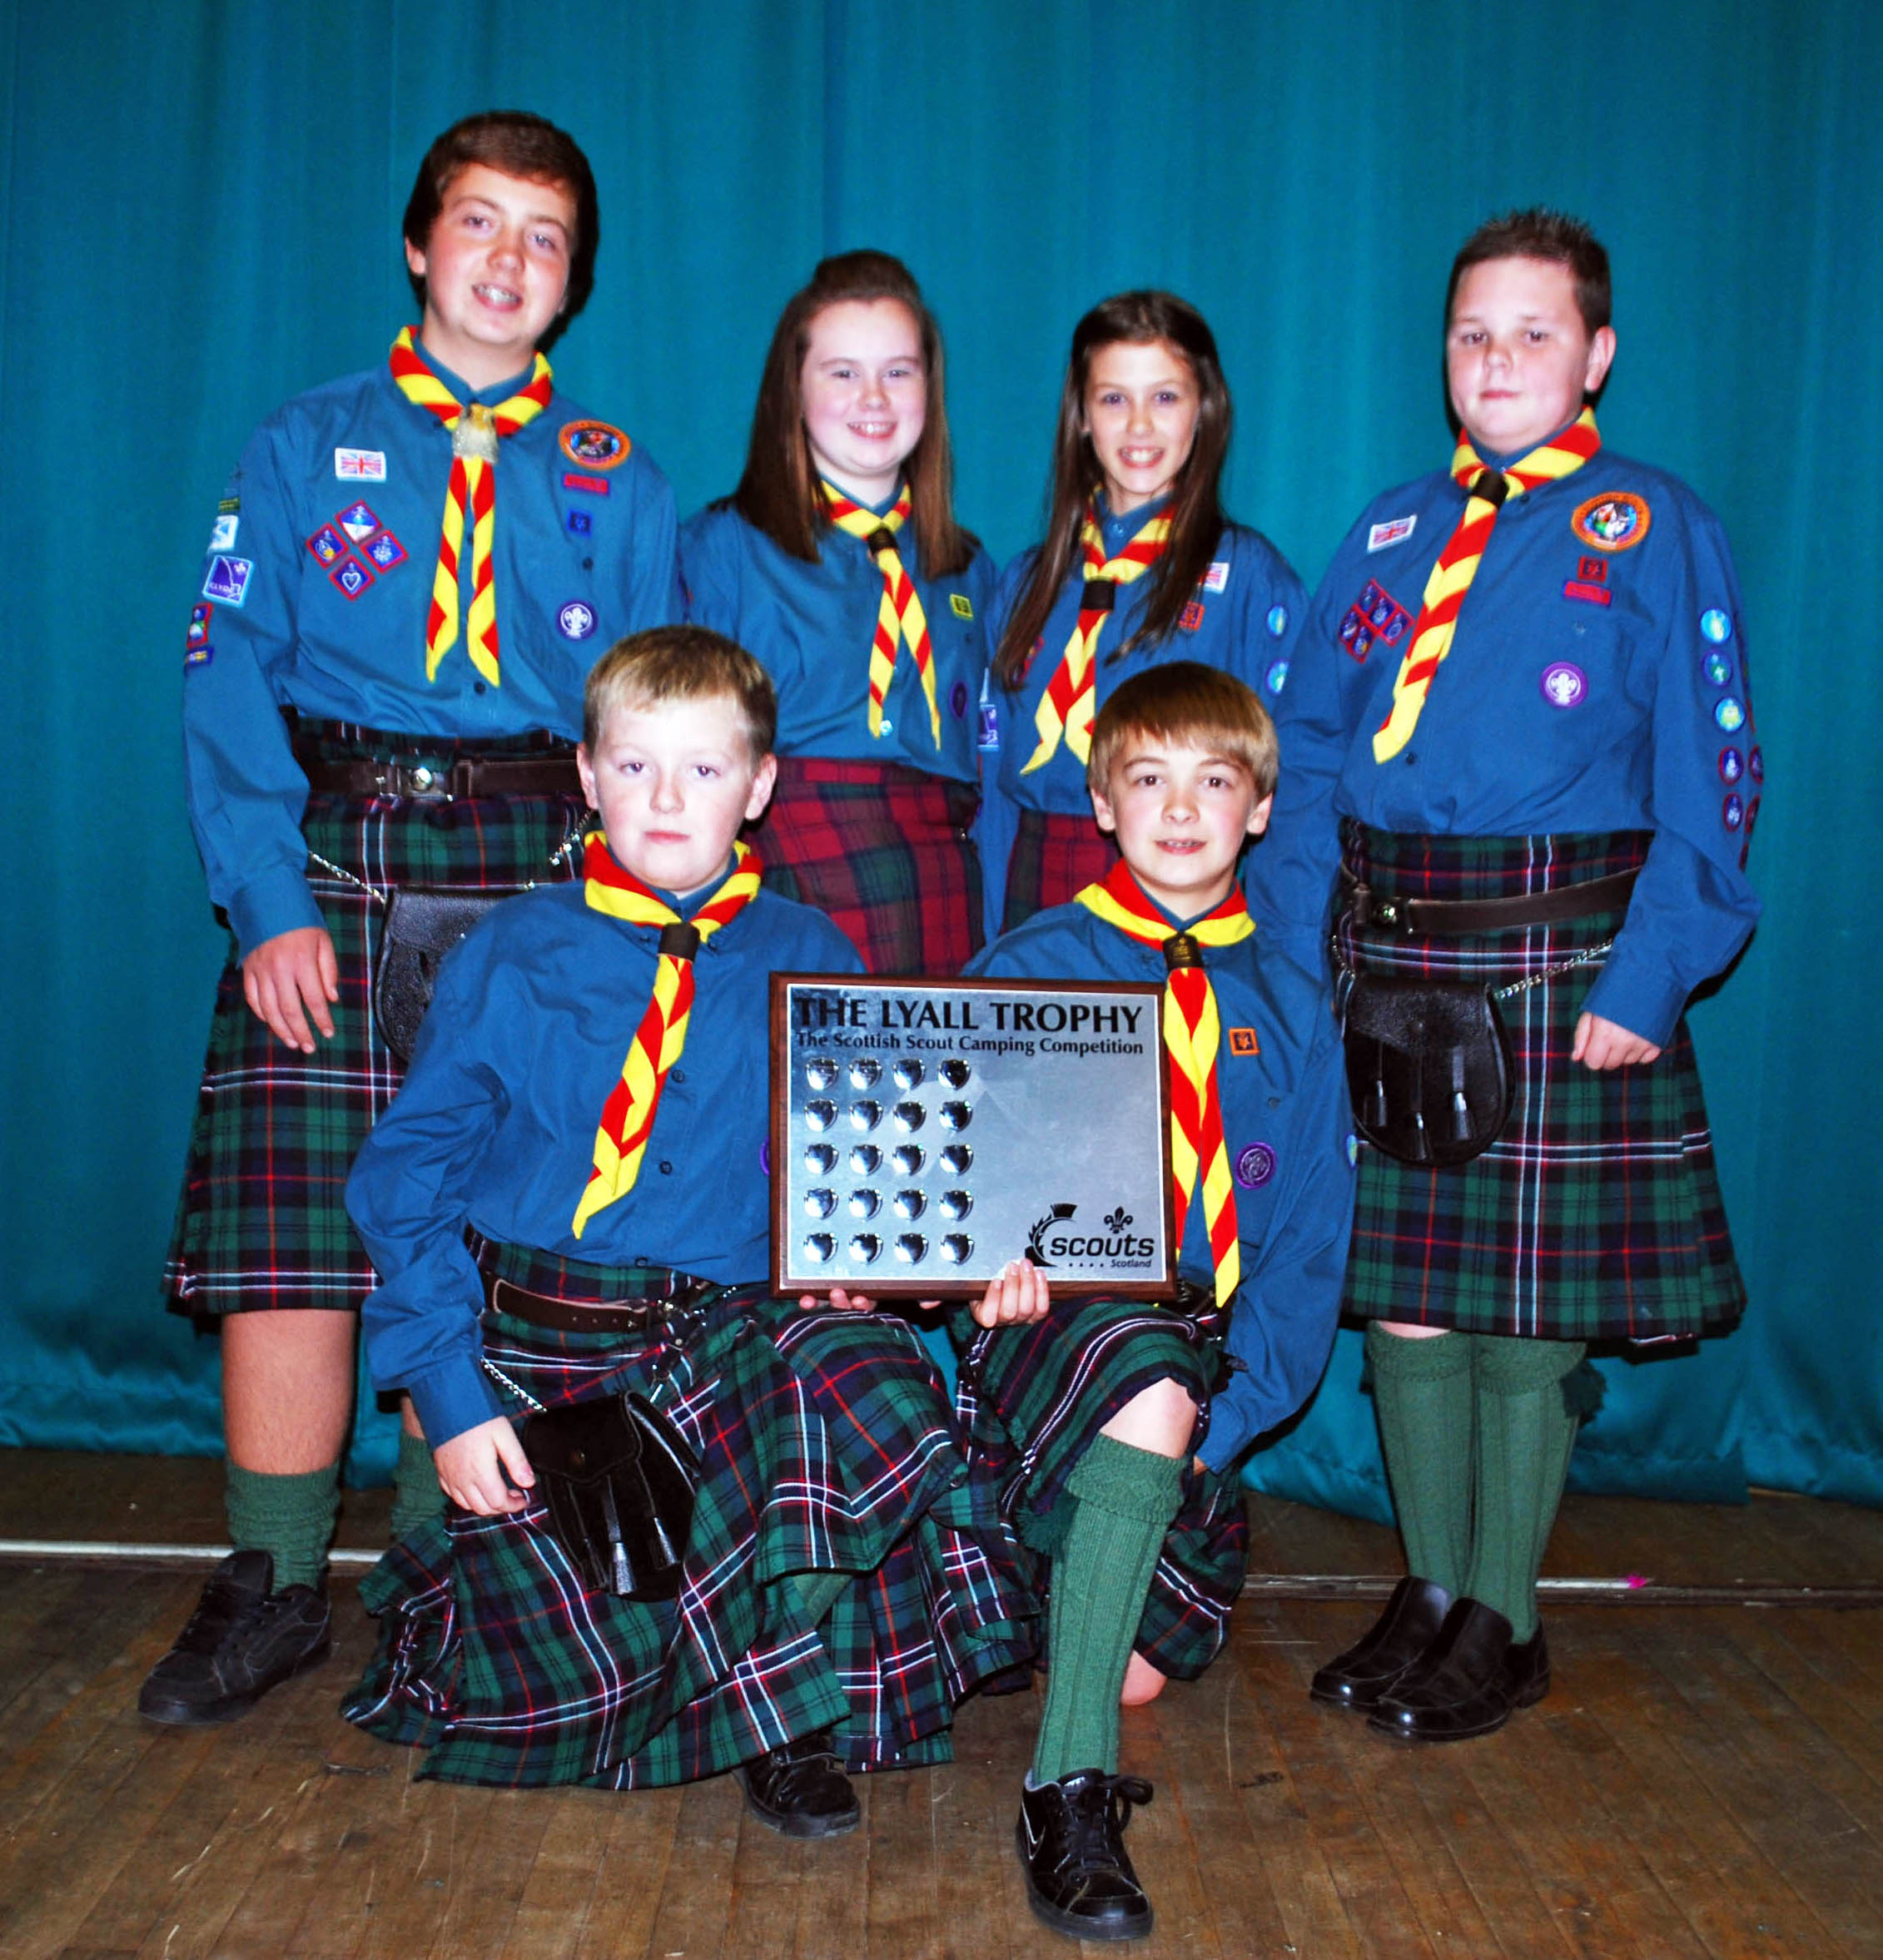 Winners of the 2011 Blacks of Greenock National Camping Competition